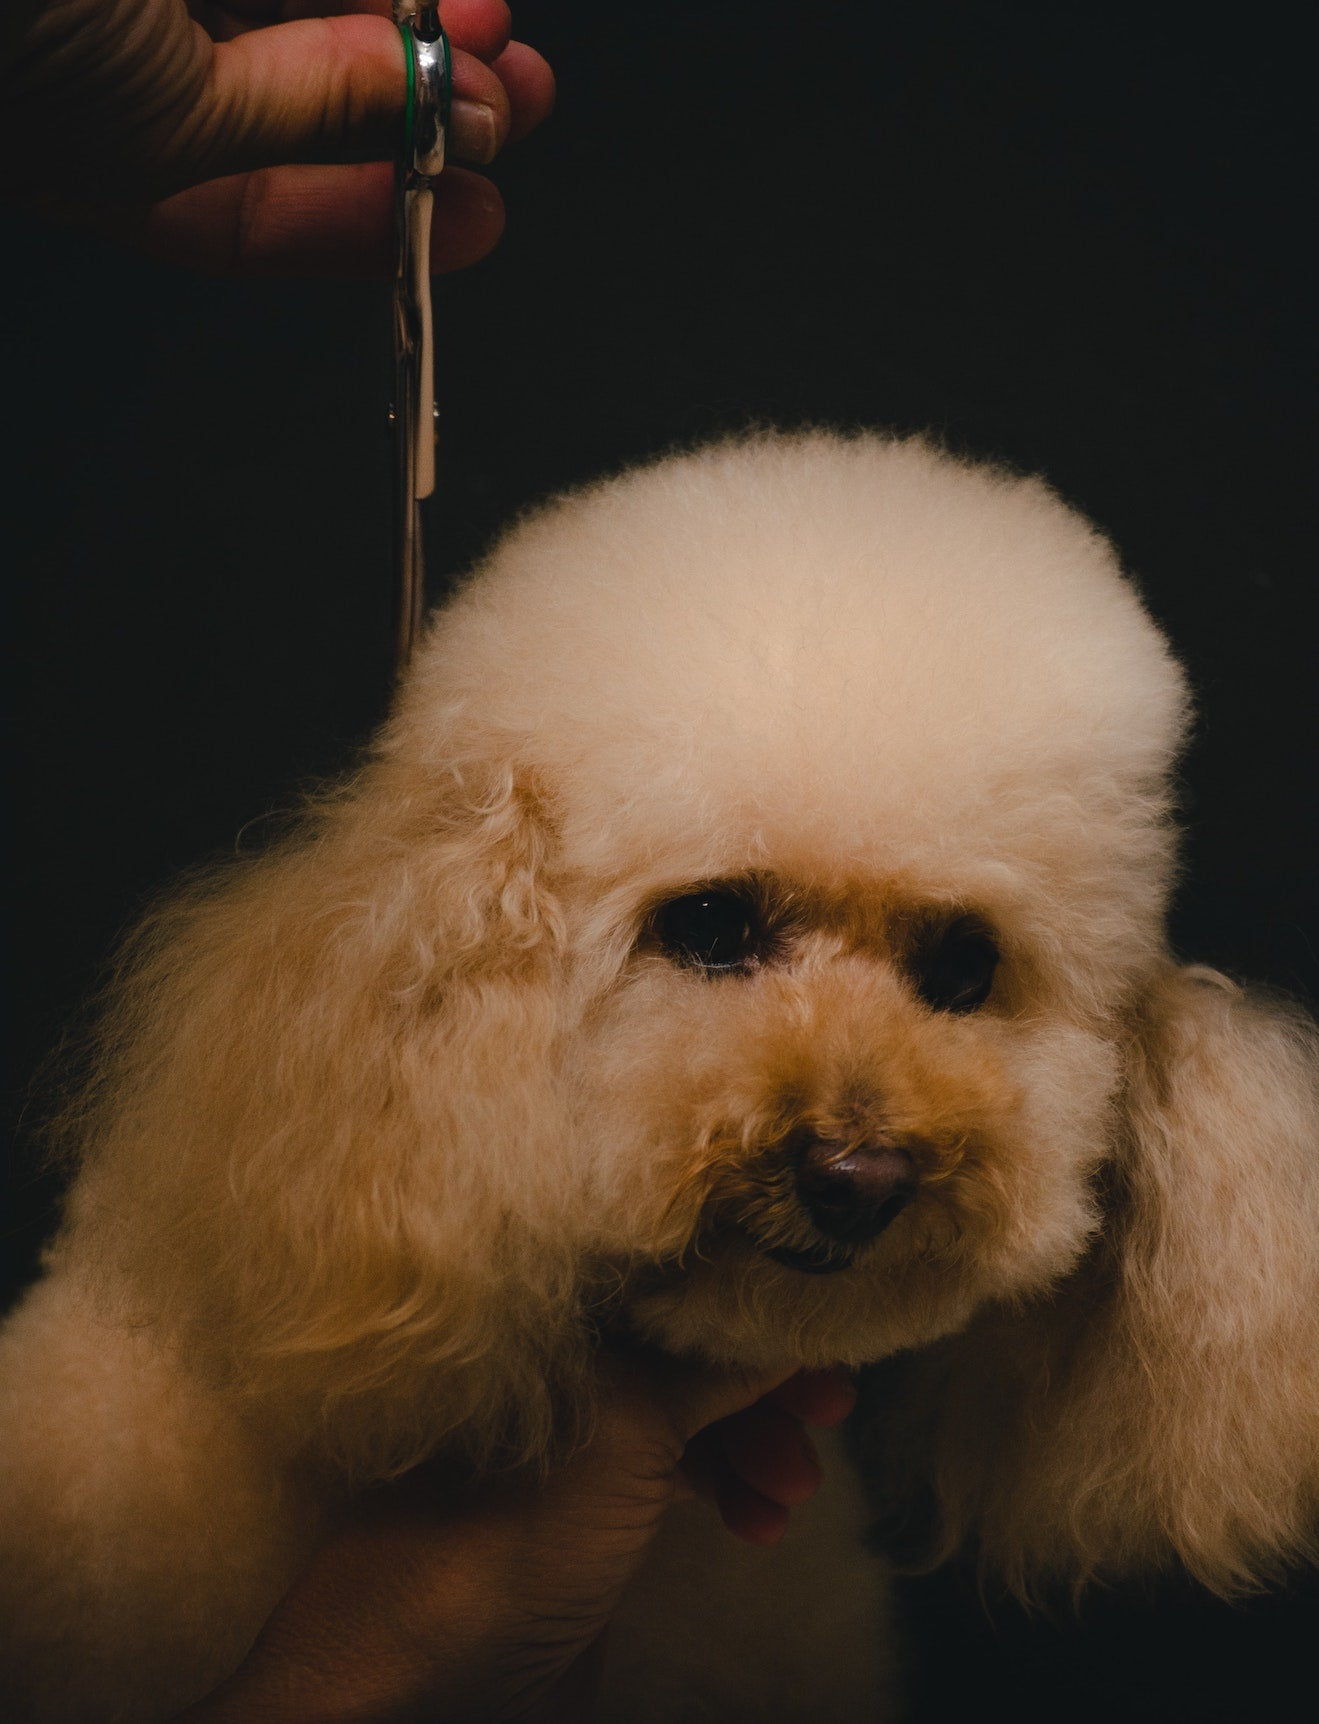 Poodle being trimmed by a groomer